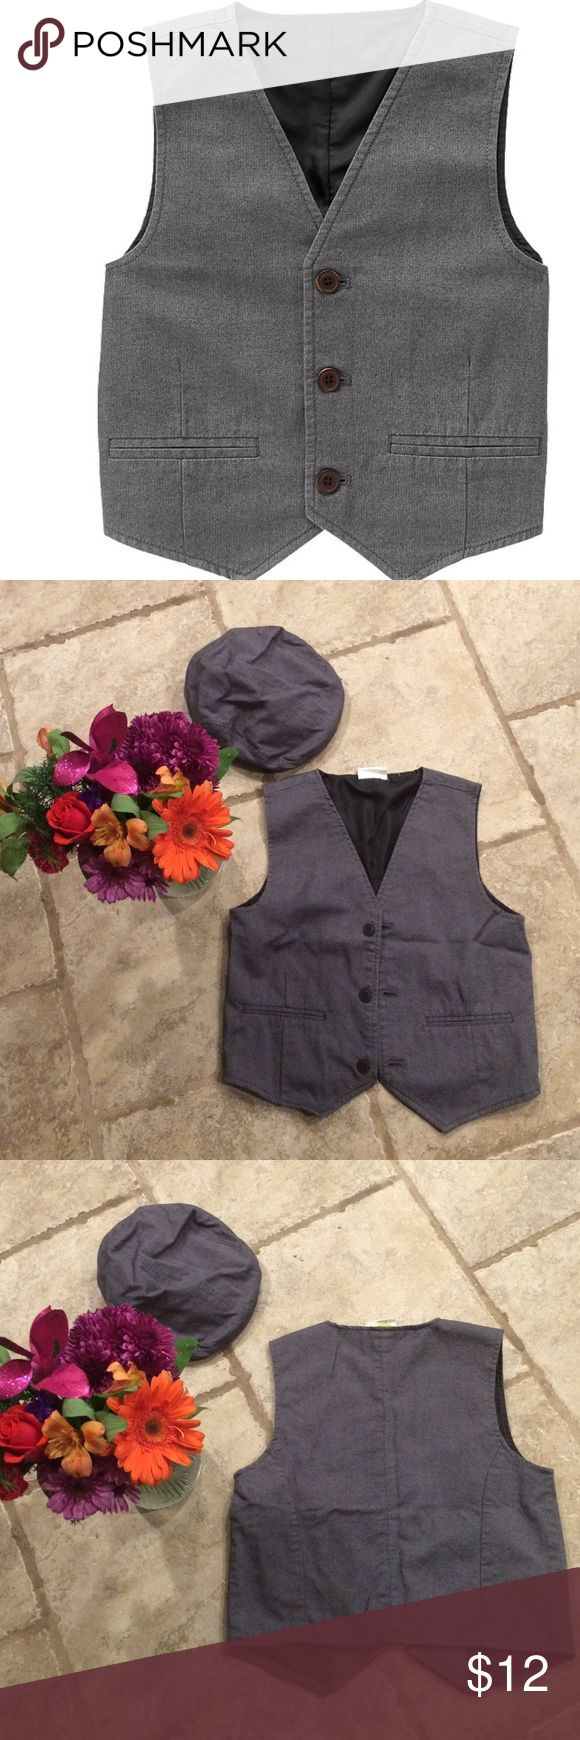 Boys gray button up vest Boys gray button up vest. Nice for dressing up with dress shirt or wear with white t-shirt. Size Medium 7-8 also have size 2T. Have matching caps available in sizes 10-12 and 12-24 months. Worn 1x to a wedding. Crazy 8 Shirts & Tops